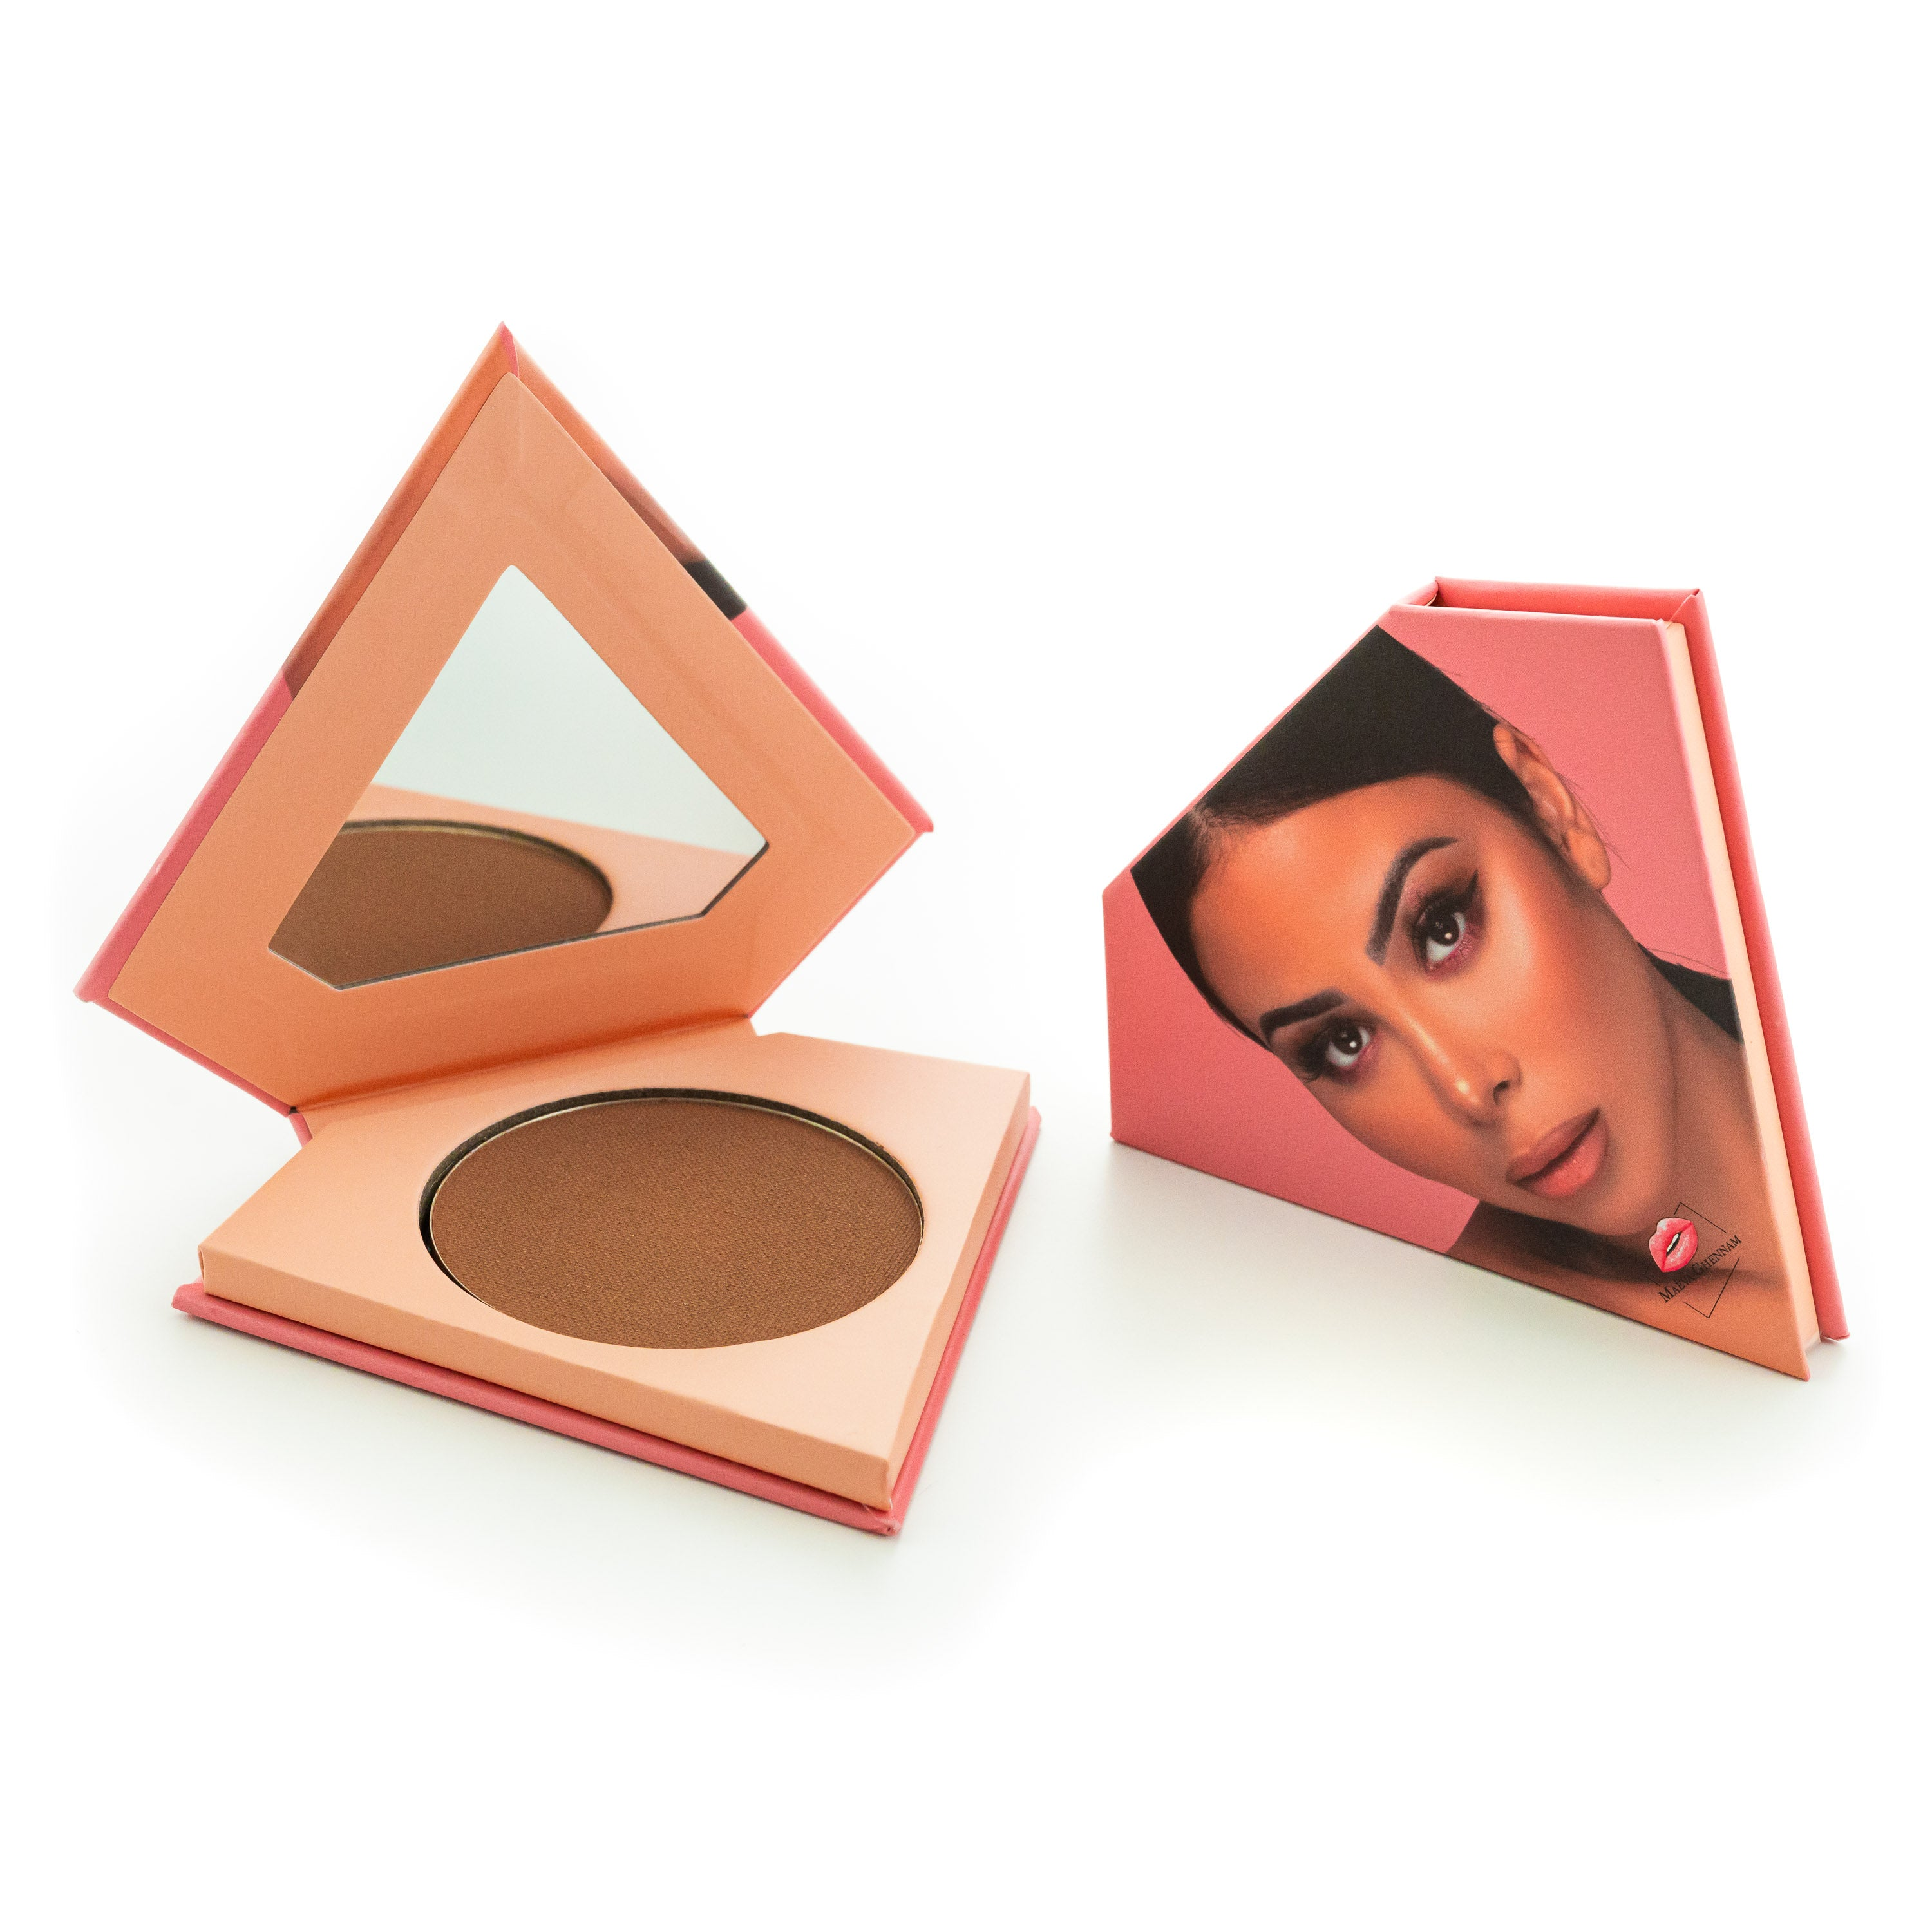 Compact powder - Ina